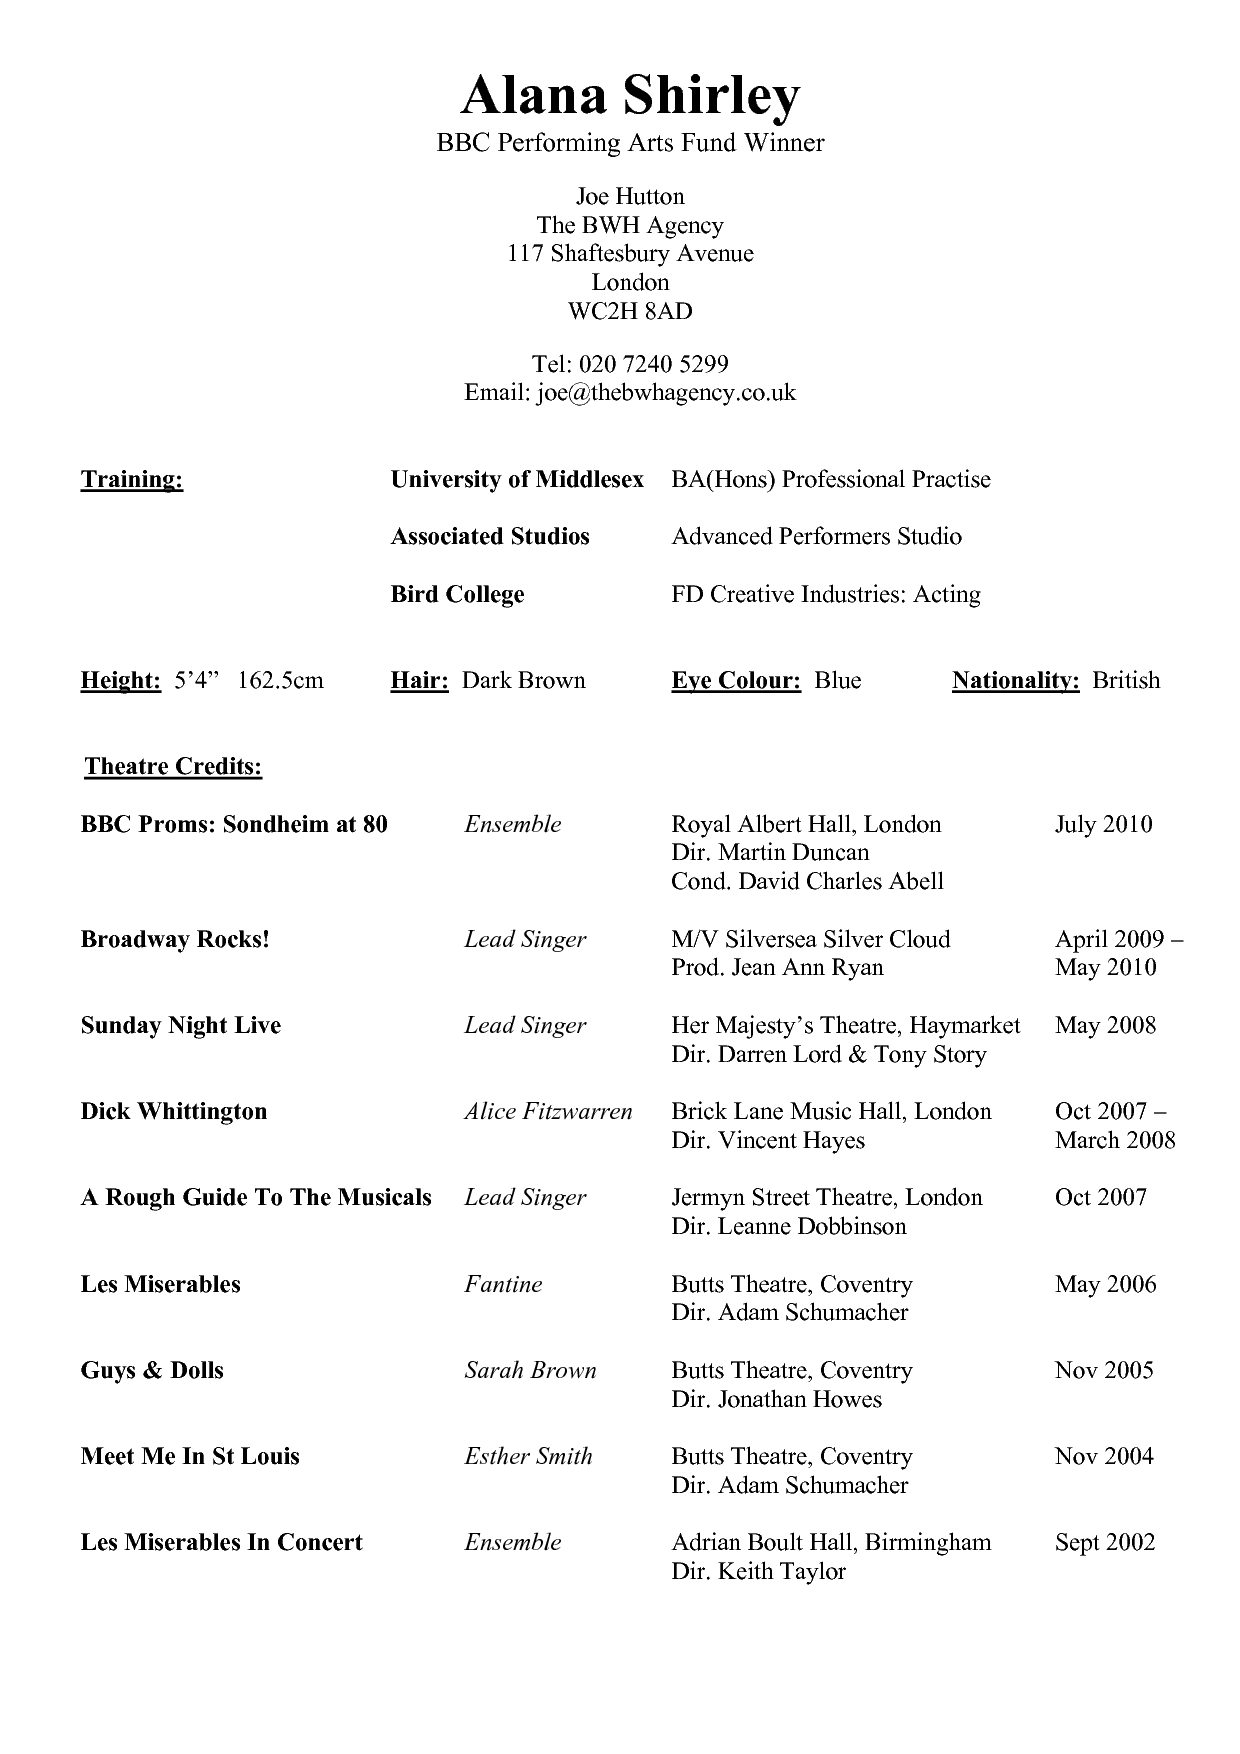 Resume Template Example for Performing Arts with Theatre Credits ...